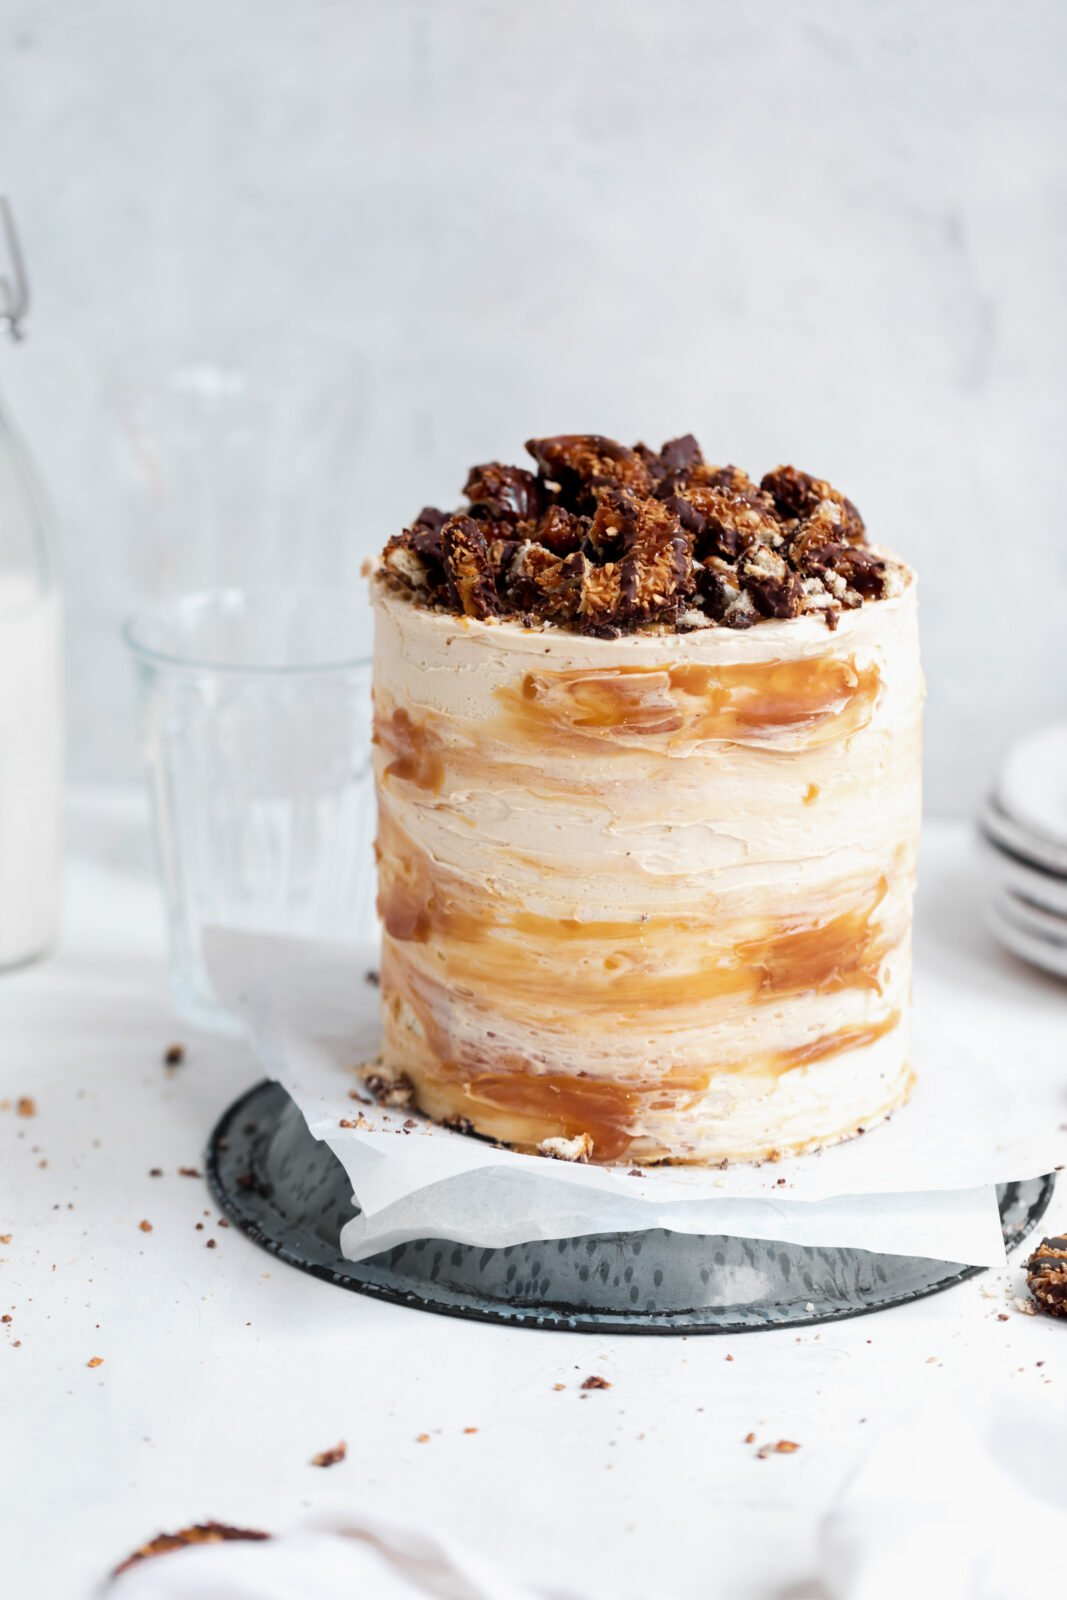 samoa chocolate cake with caramel coconut frosting